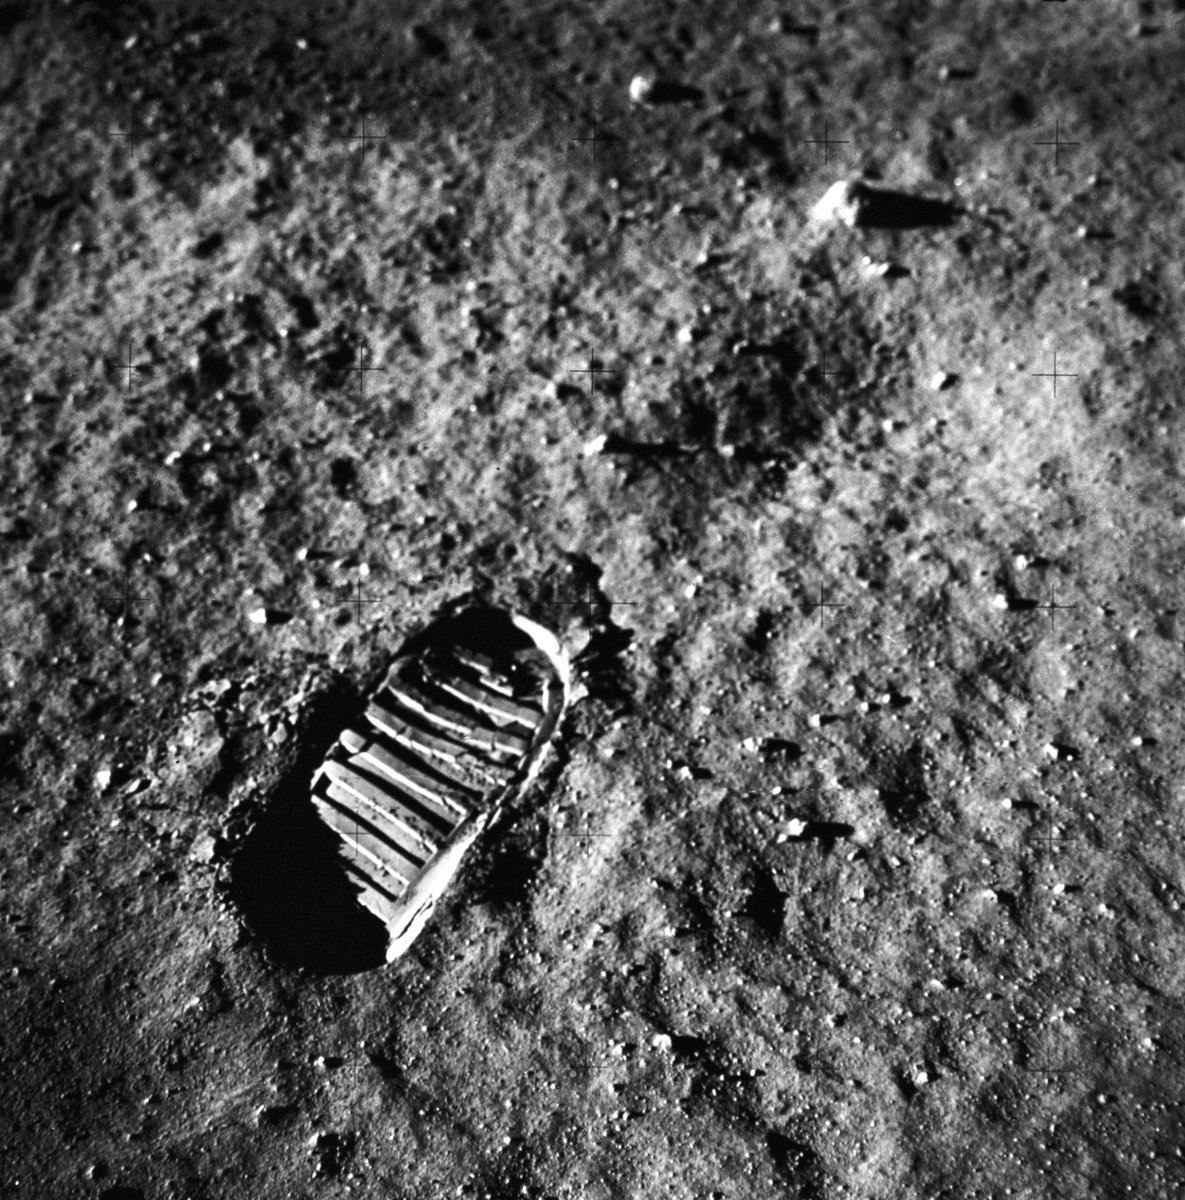 109:24:23 Armstrong: That's one small step for (a) man; one giant leap for mankind.